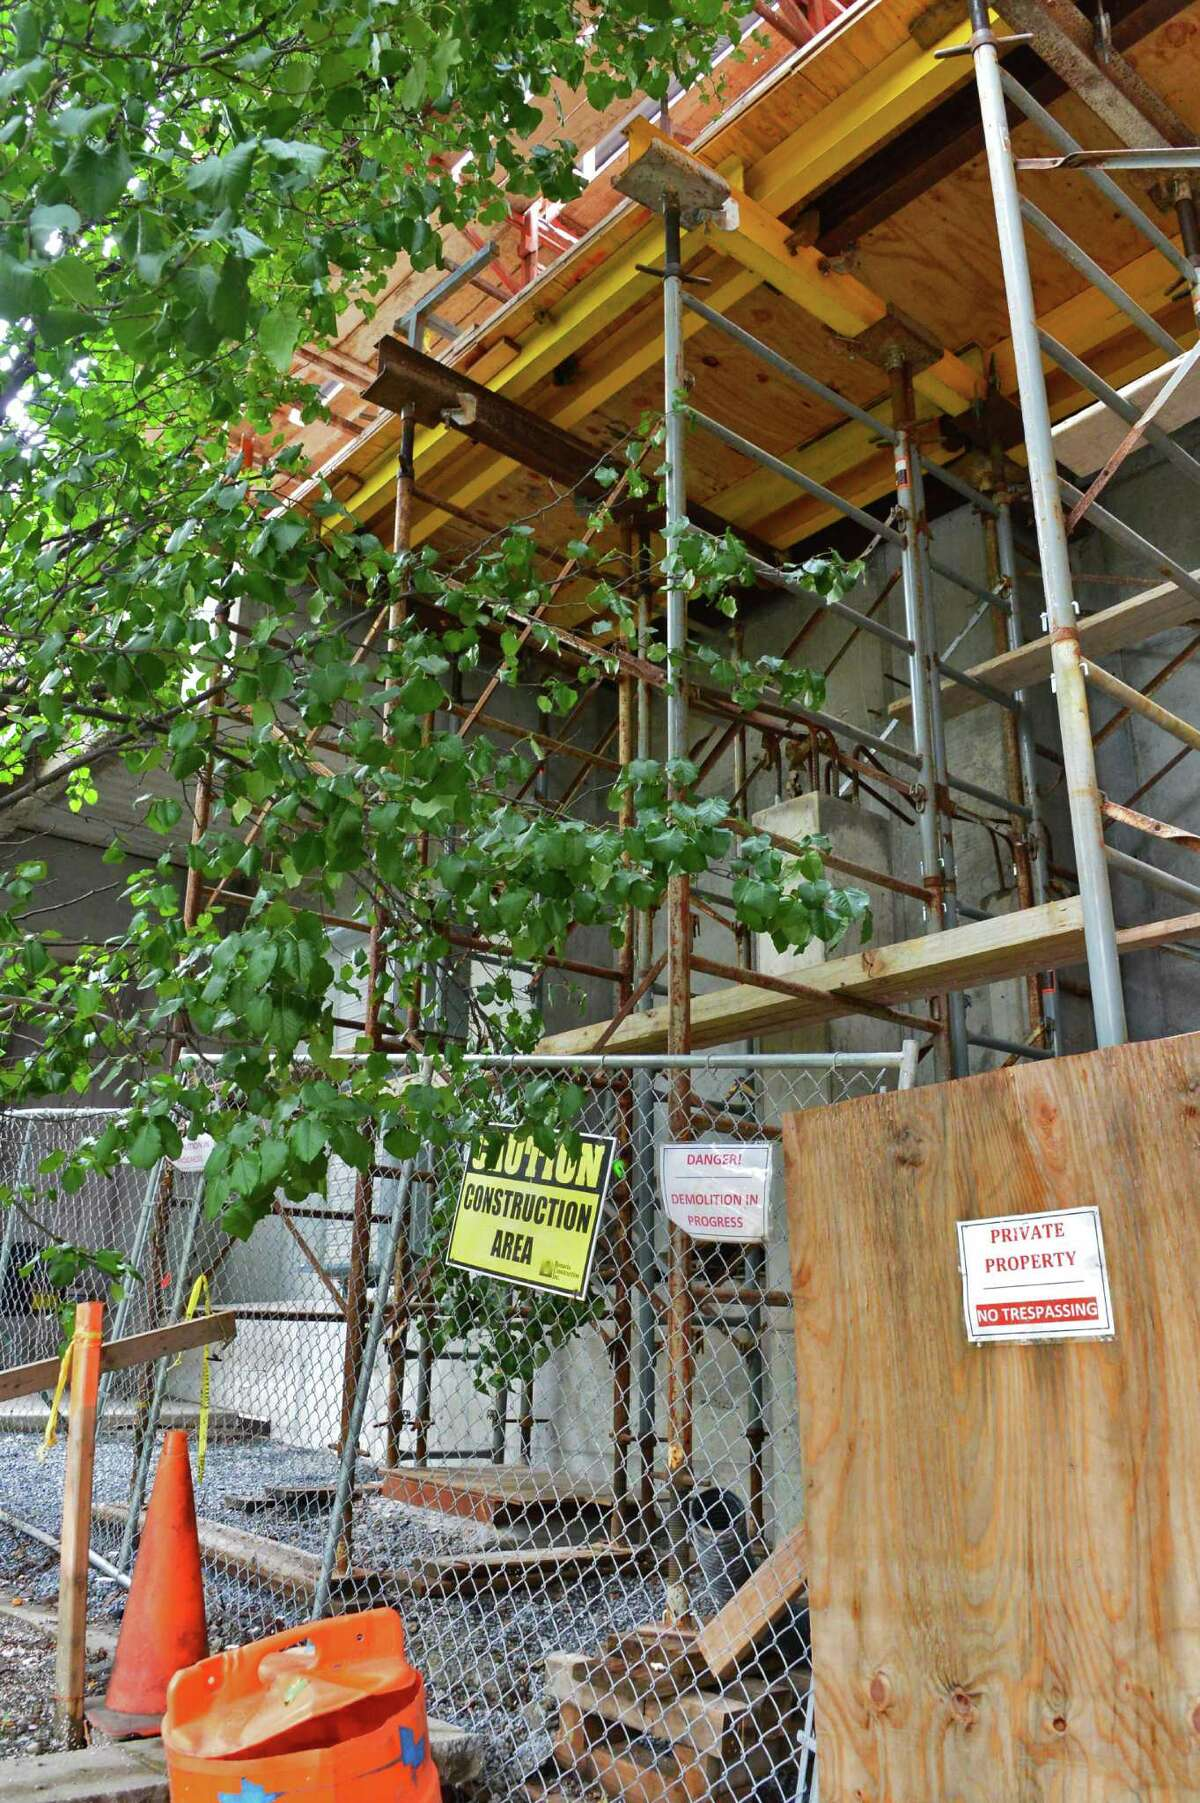 Construction scaffolding behind 422 Broadway Tuesday Sept. 3, 2013, in Saratoga Springs, N.Y. (John Carl D'Annibale / Times Union)